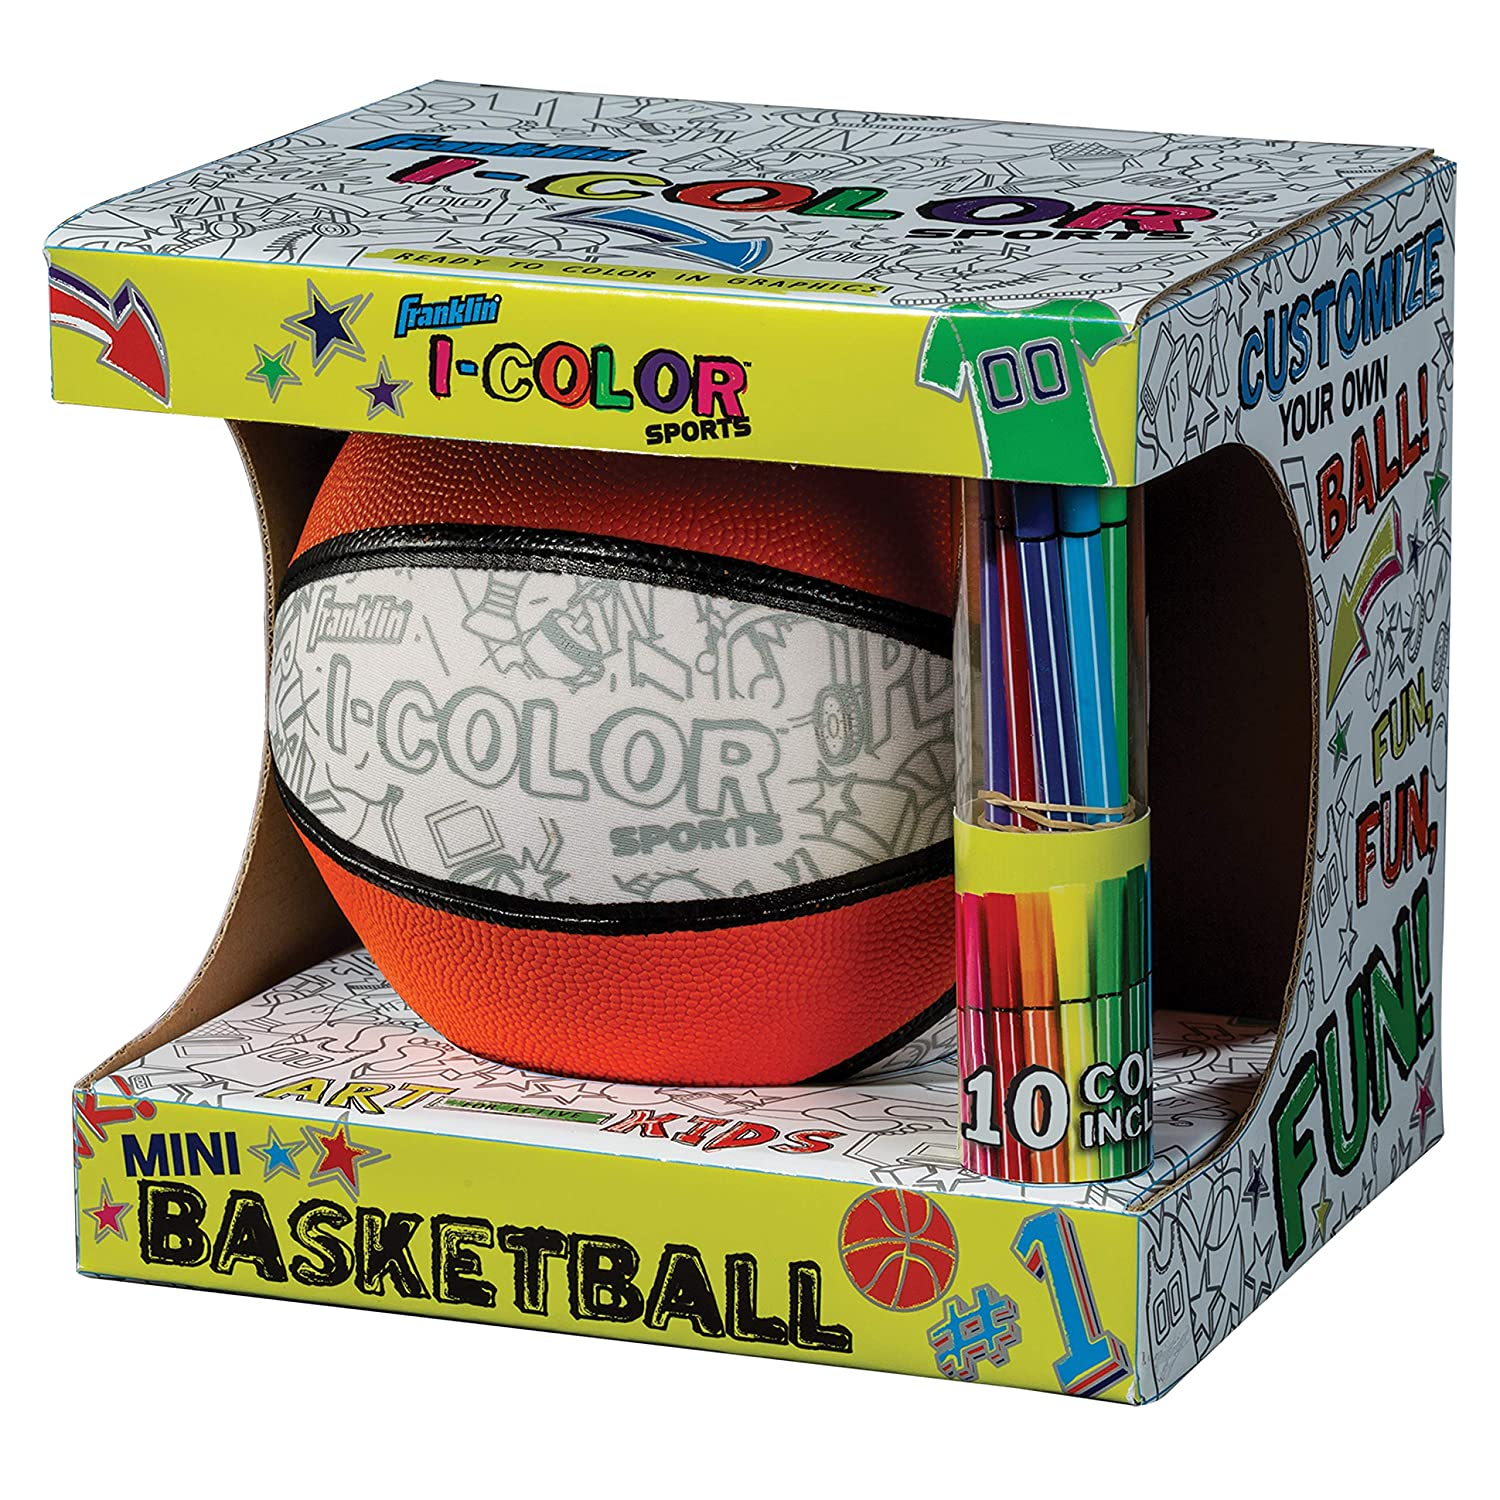 Customize Your Own Ball Basketball or Soccer Ball Franklin Sports I-Color Sports Ball Football